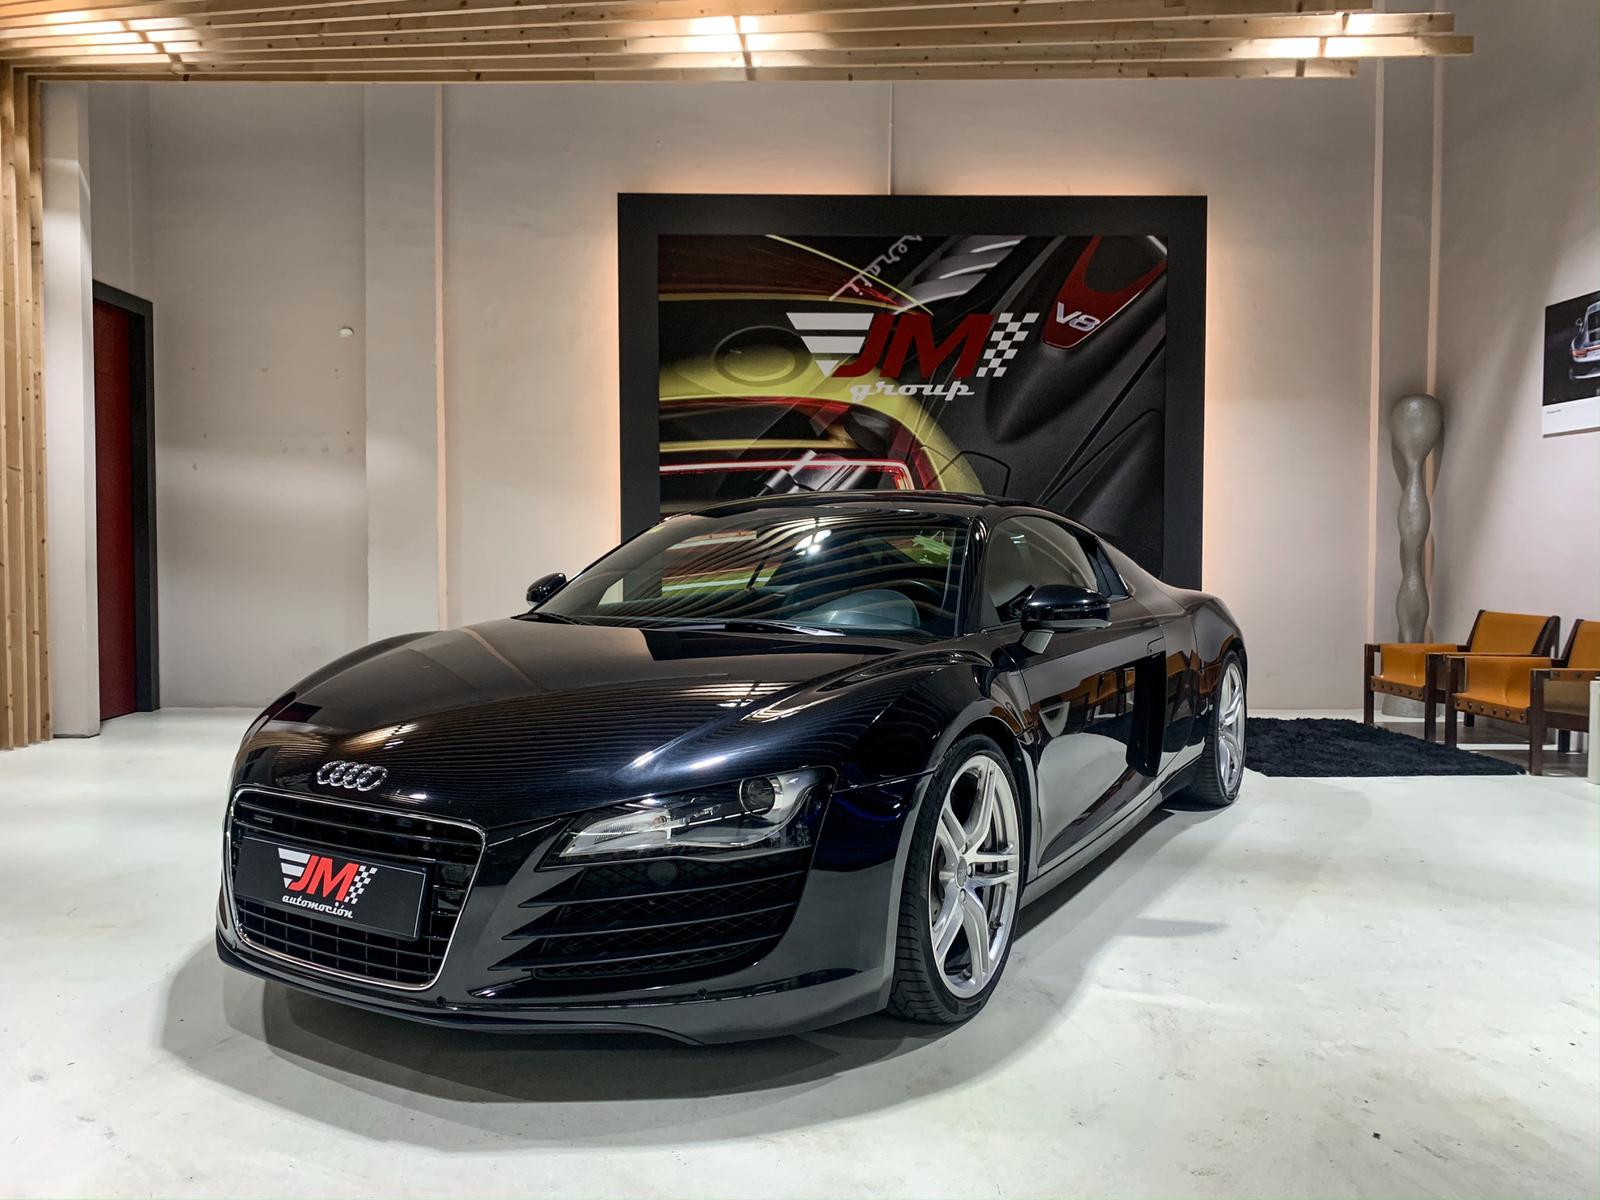 AUDI R8 4.2 FSI MANUAL --IVA DEDUCIBLE--